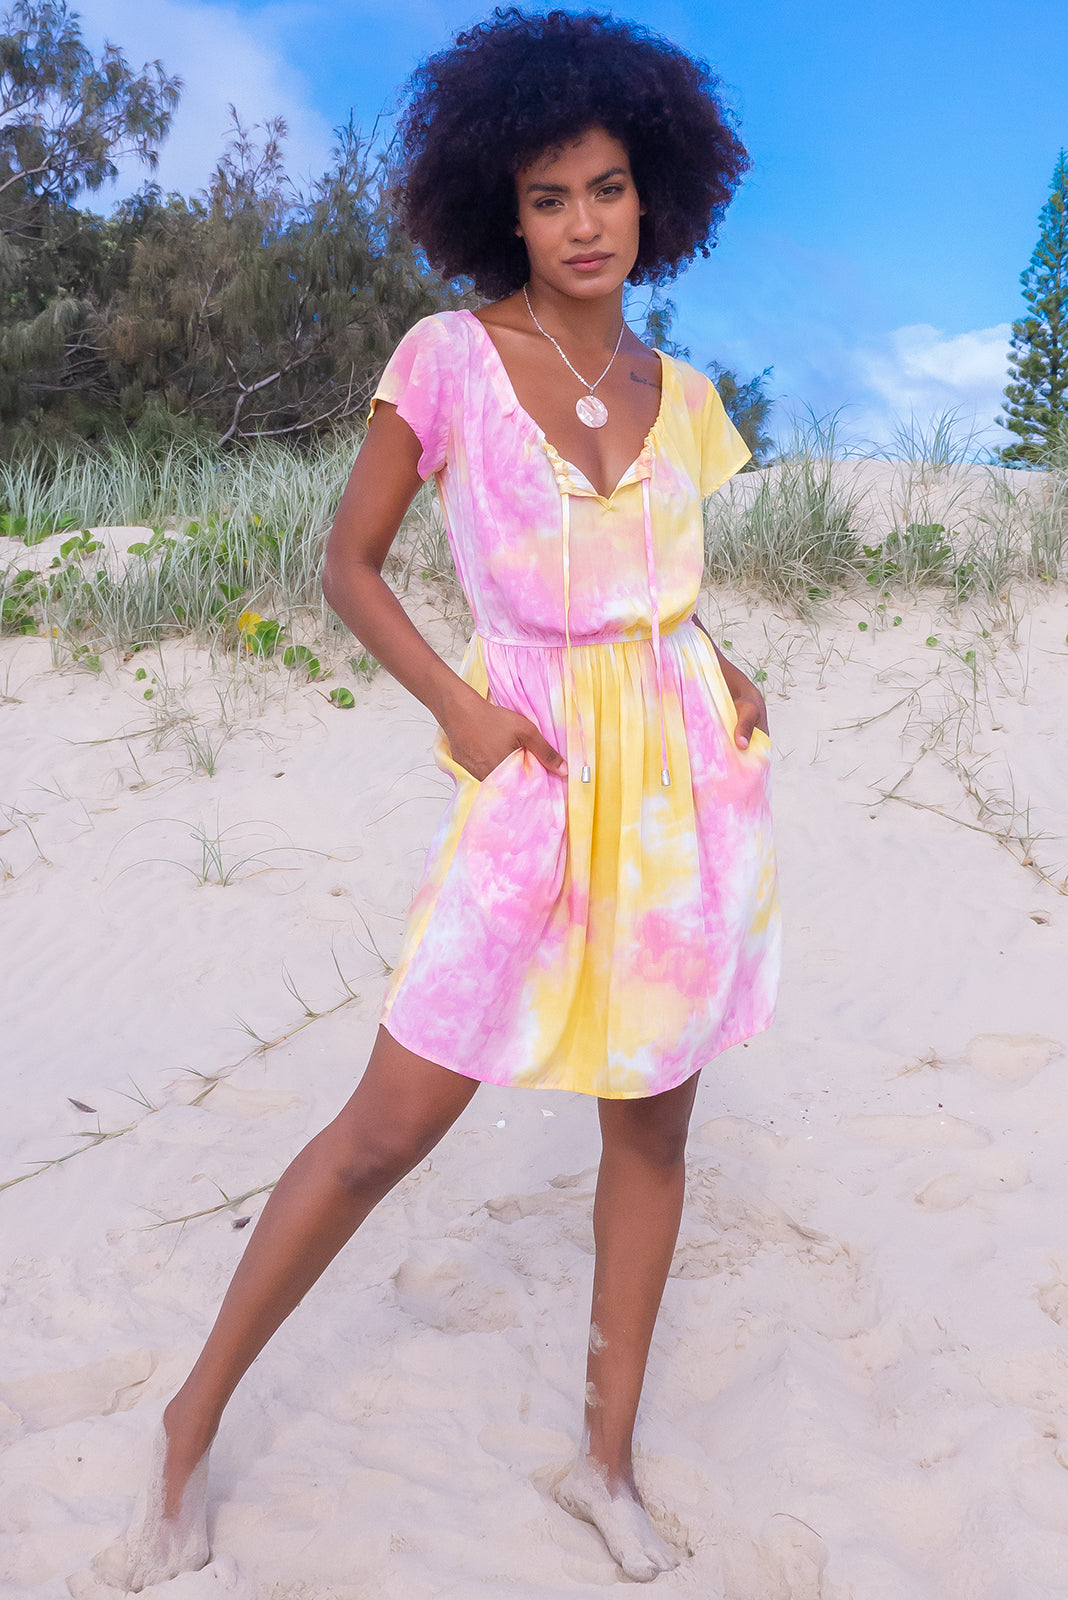 The Ace Gelati Tie Dye Dress features adjustable neckline with ties, elasticated waist, side pockets and 100% rayon in pink and yellow tie dye.